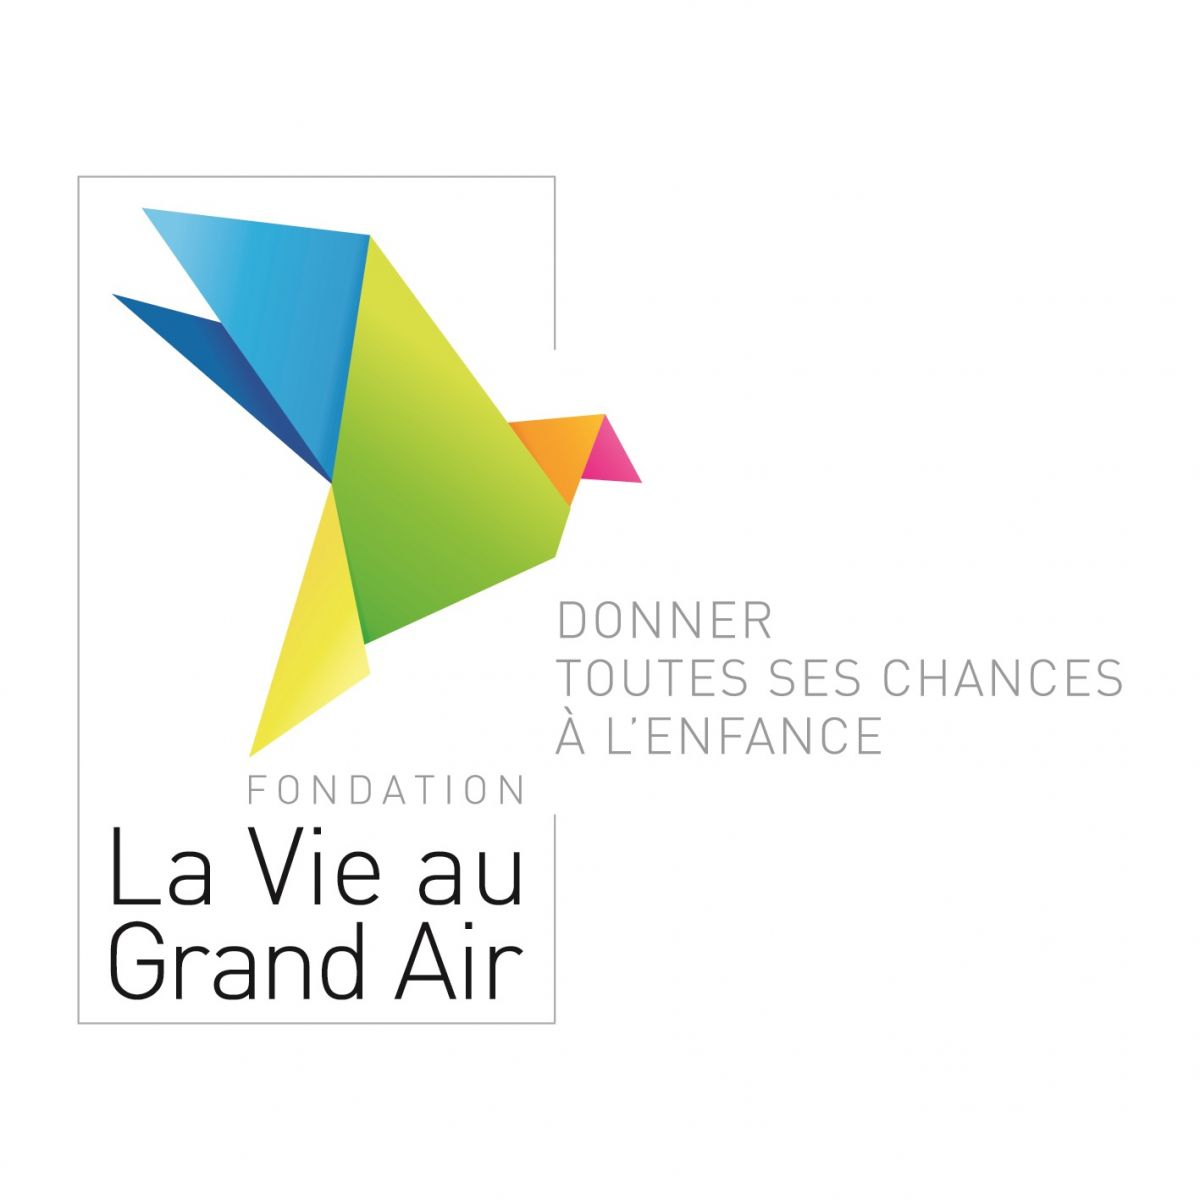 La fondation la Vie au grand Air recrute un pédopsychiatre